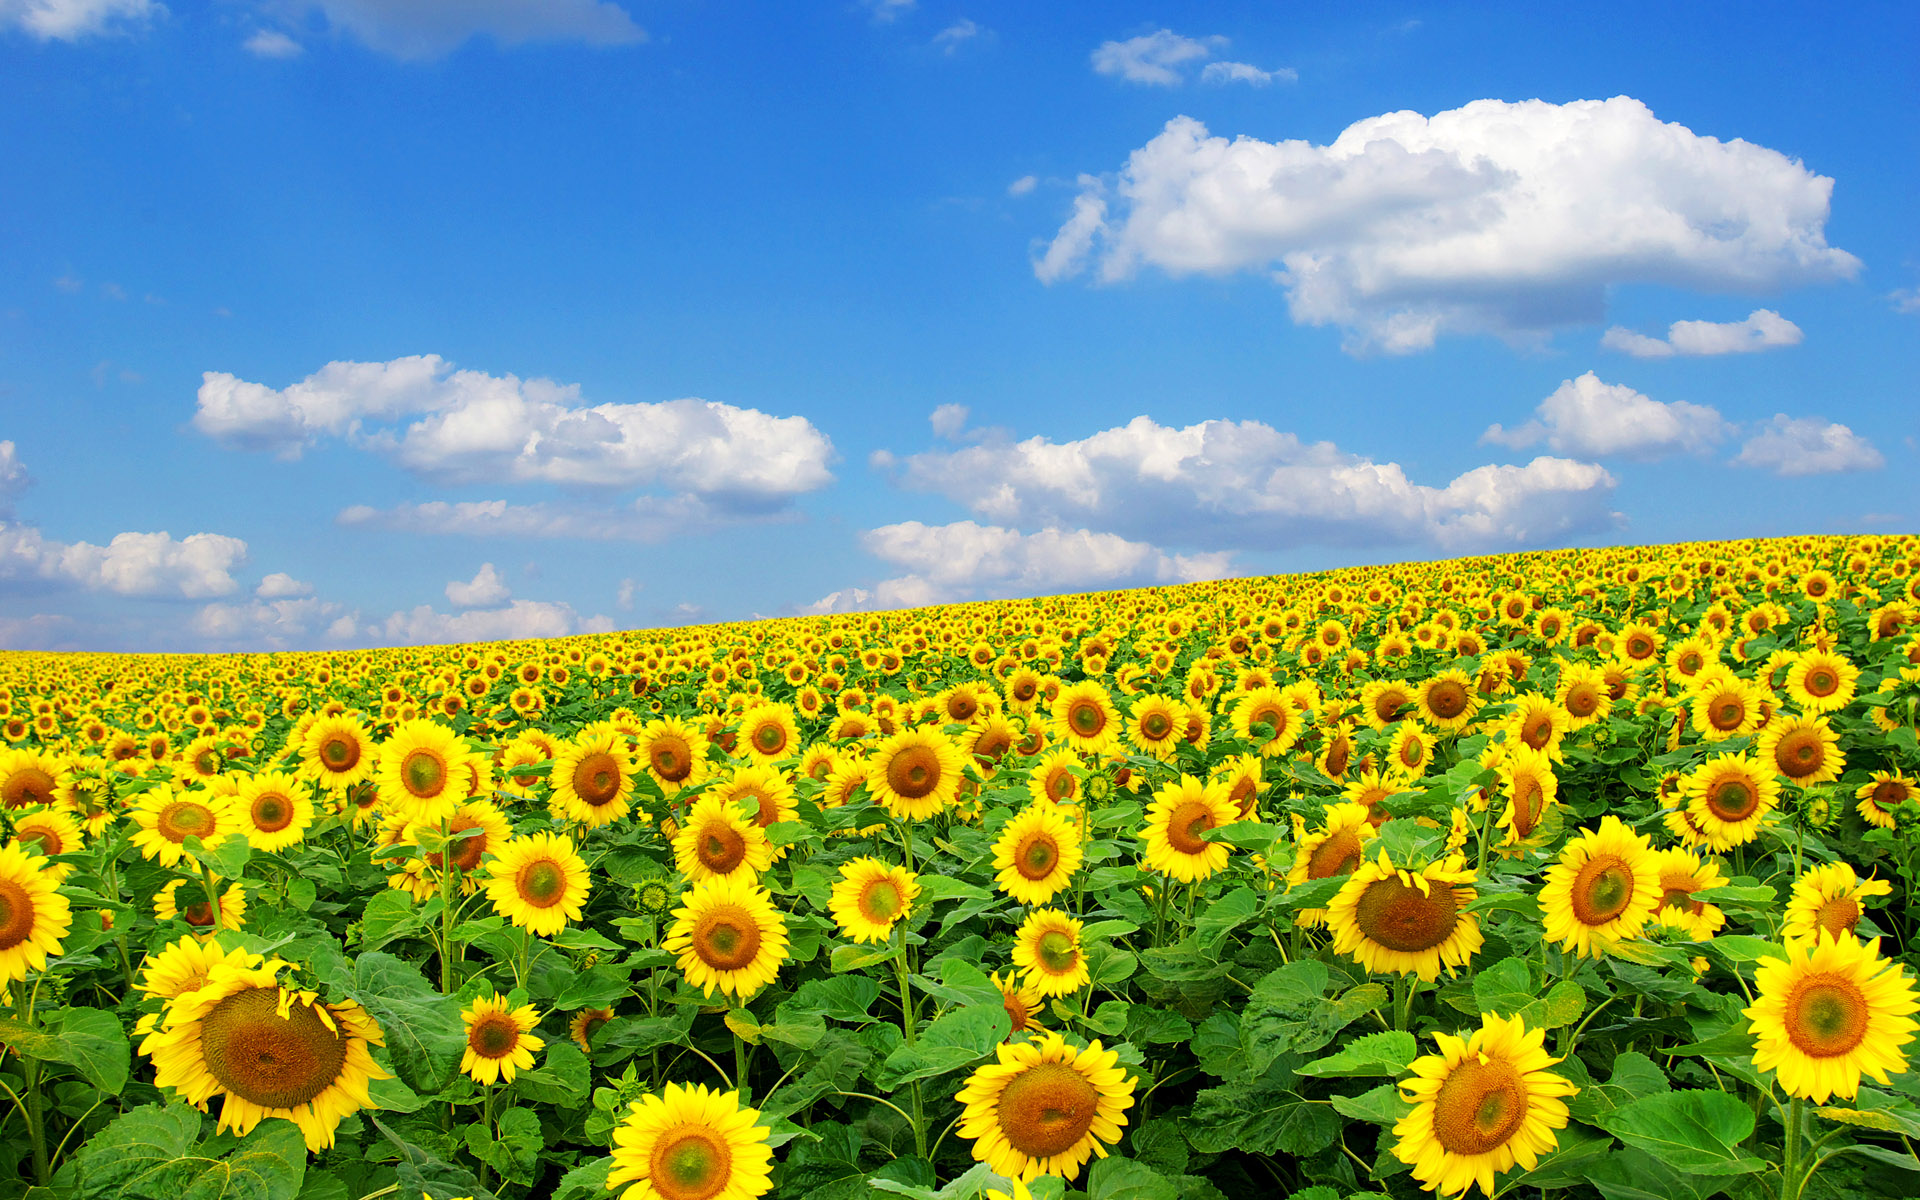 Snow Falling Wallpaper For Ipad Sunflowers Raising The Head And Smiling They Deserve The